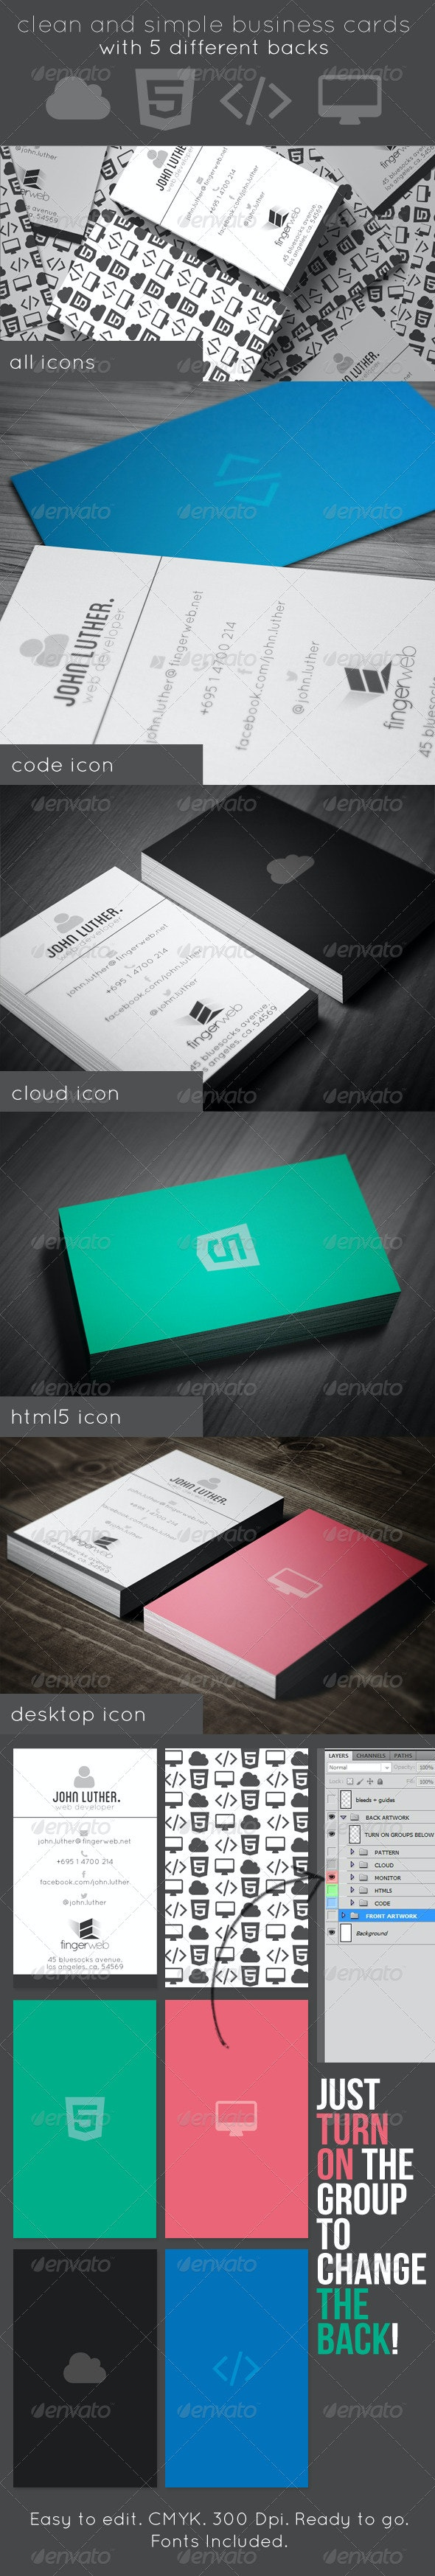 Icon Business Cards 5 Backs - Creative Business Cards